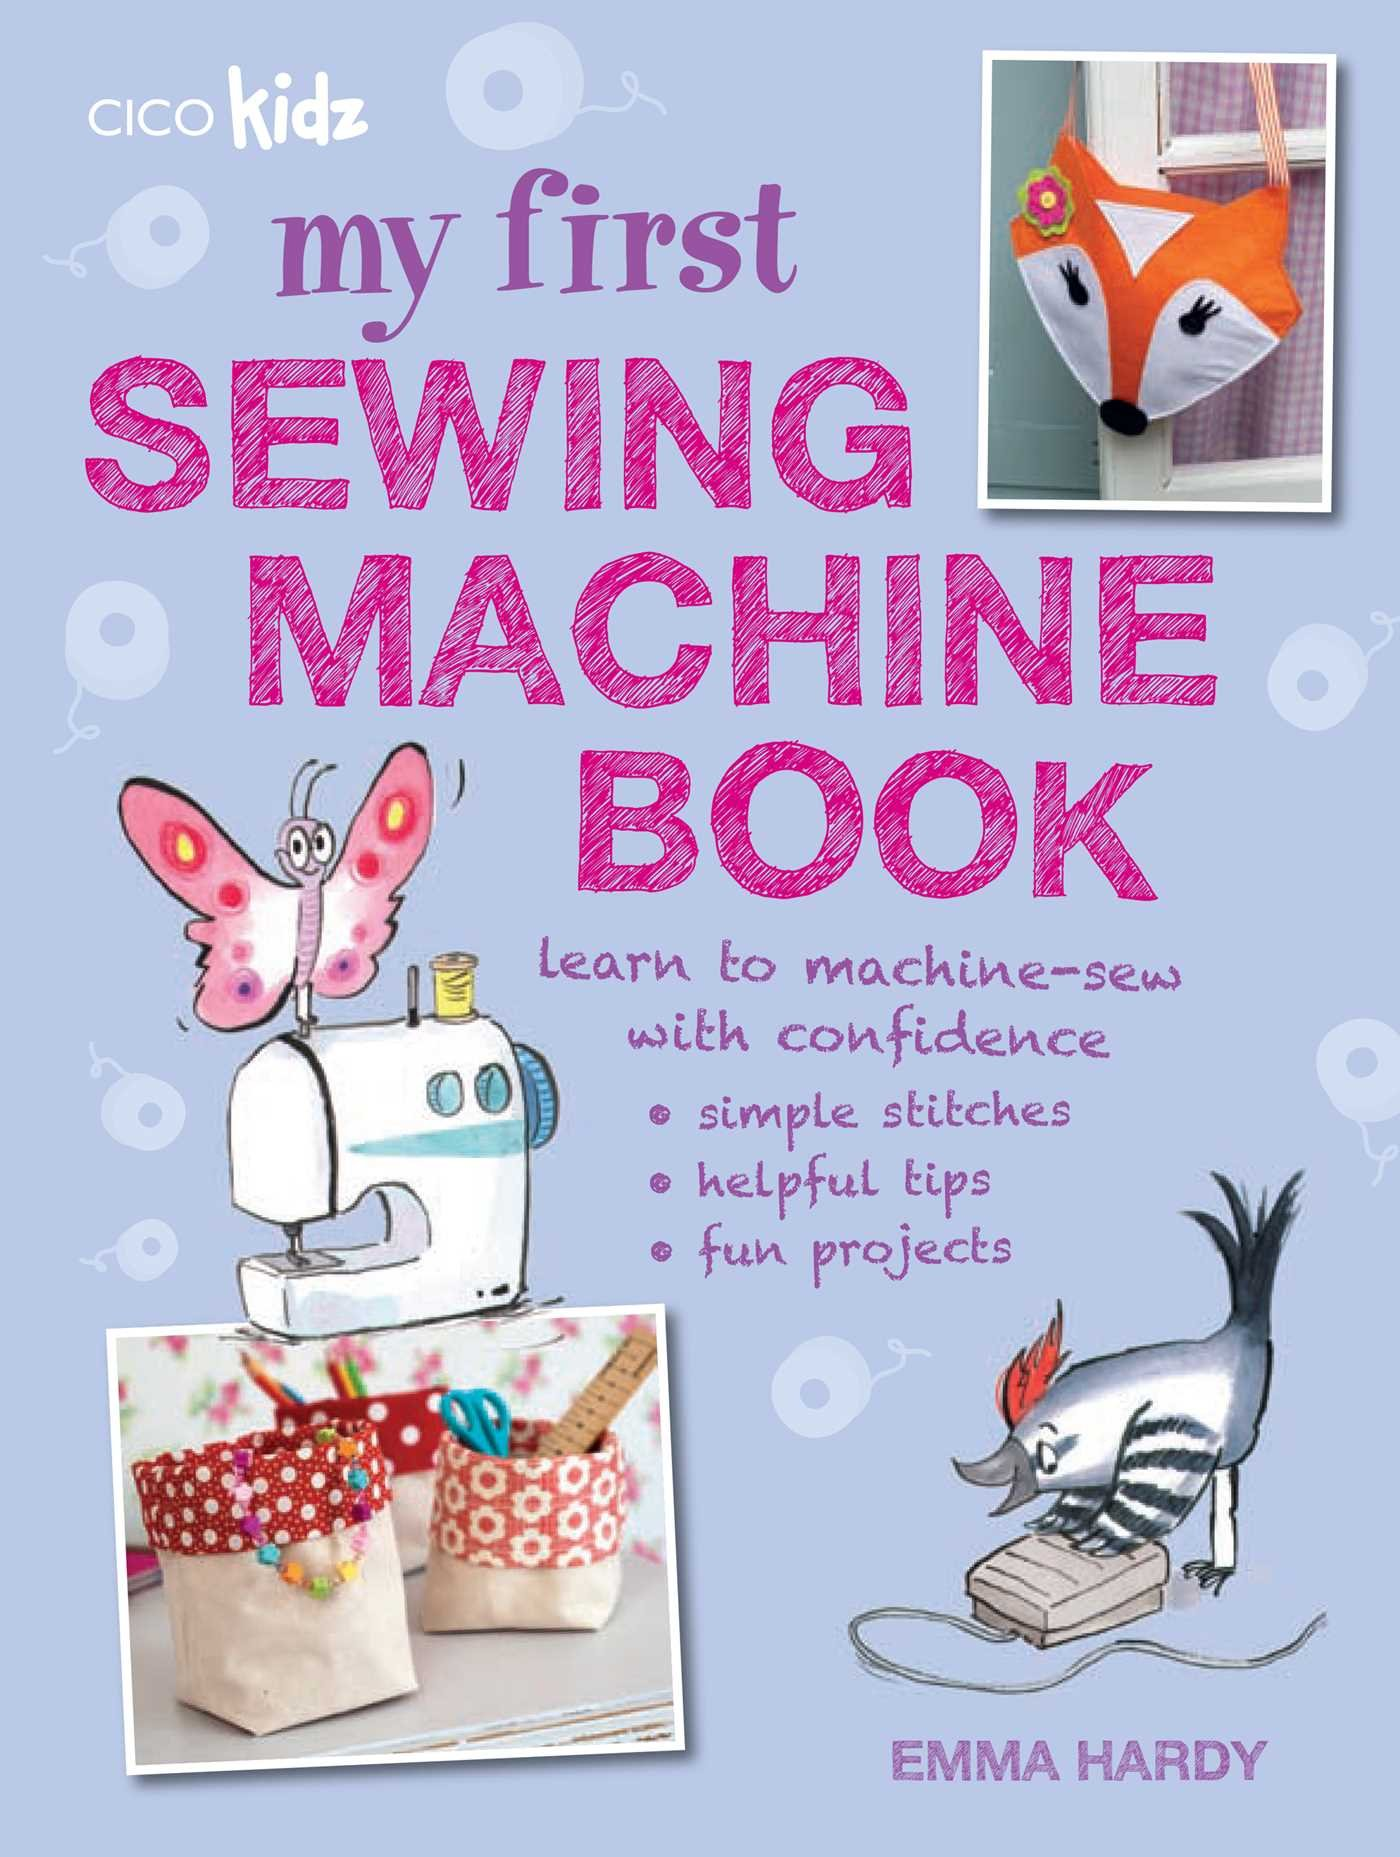 My First Sewing Machine Book product image